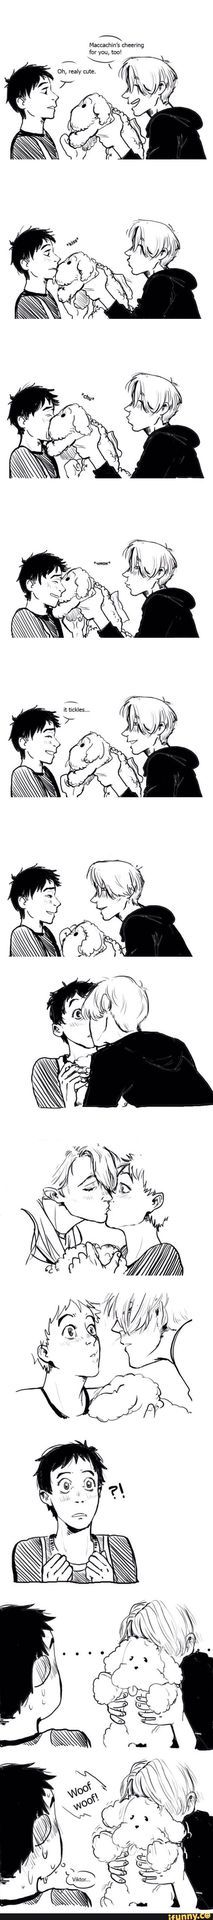 #wattpad #fanfiction Viktor finds out about Yuri's last dogs death and decides to get him a new one.